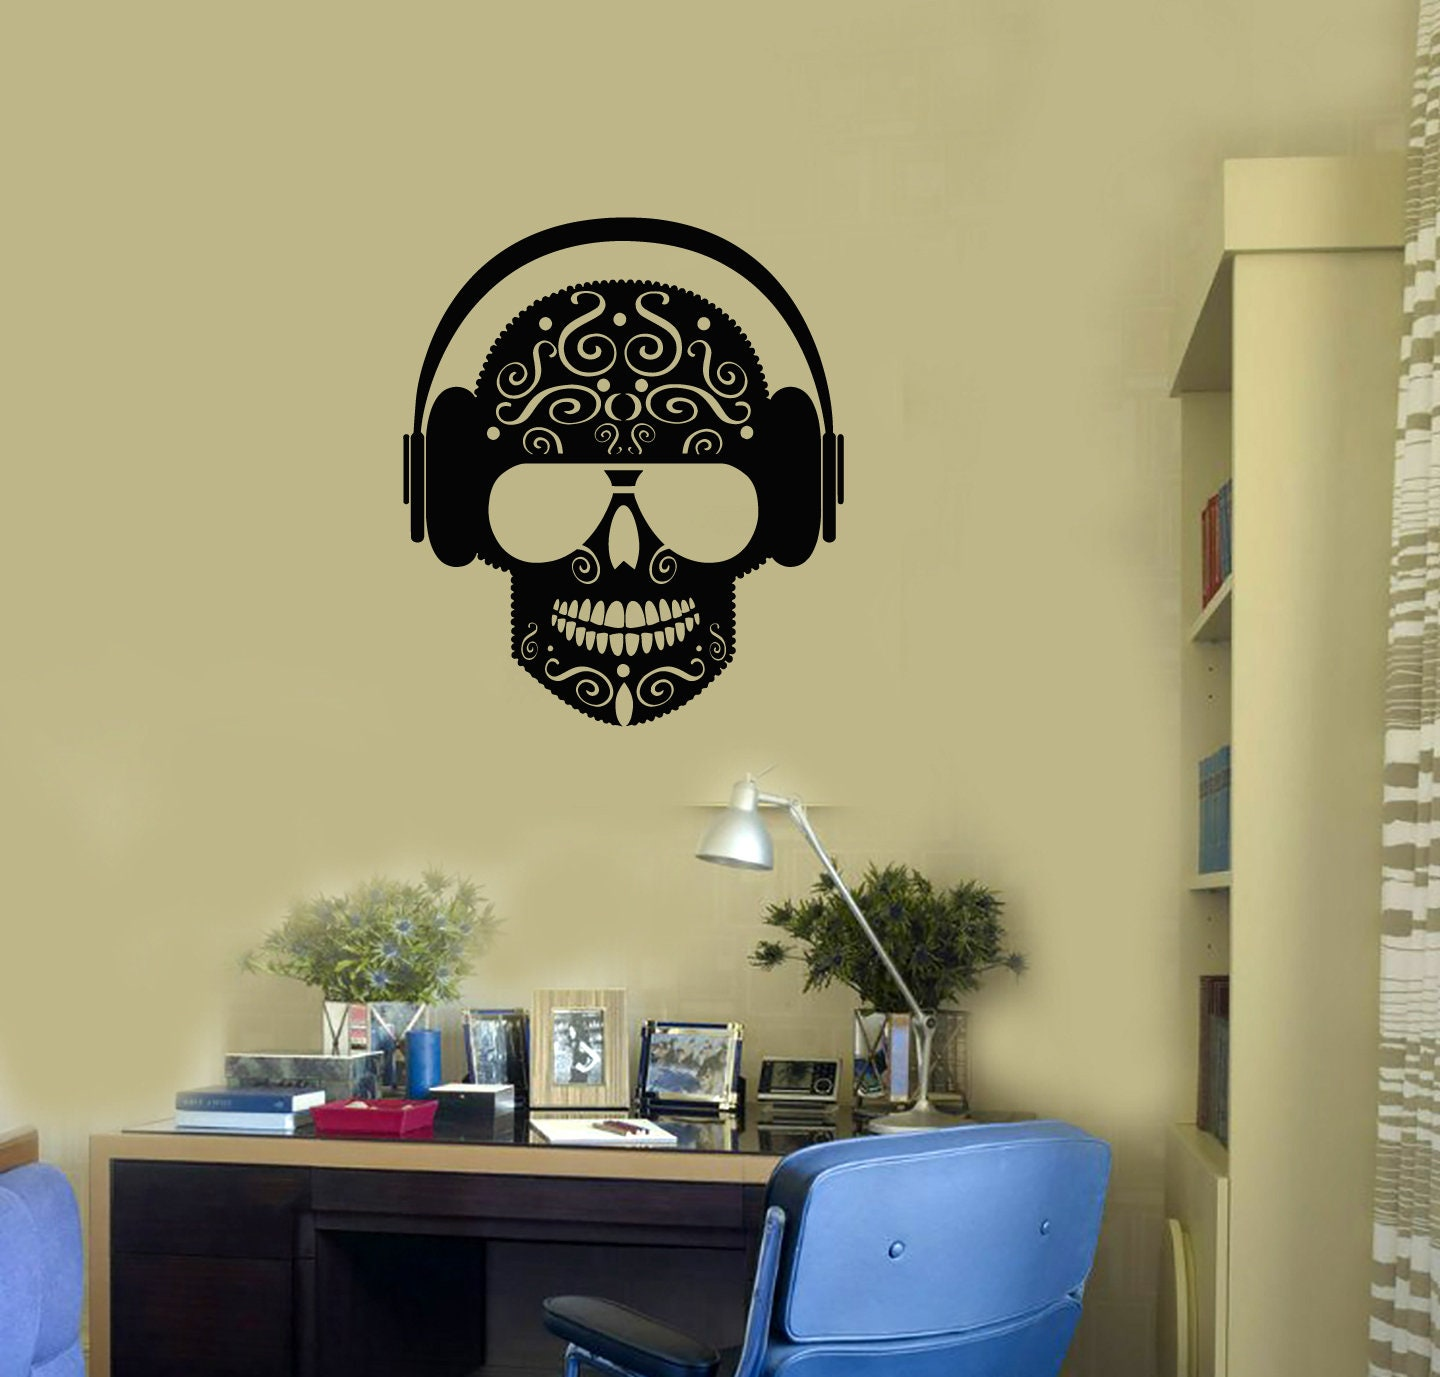 Sugar Skull Vinyl Wall Decal Headphones Glasses Music Room Art